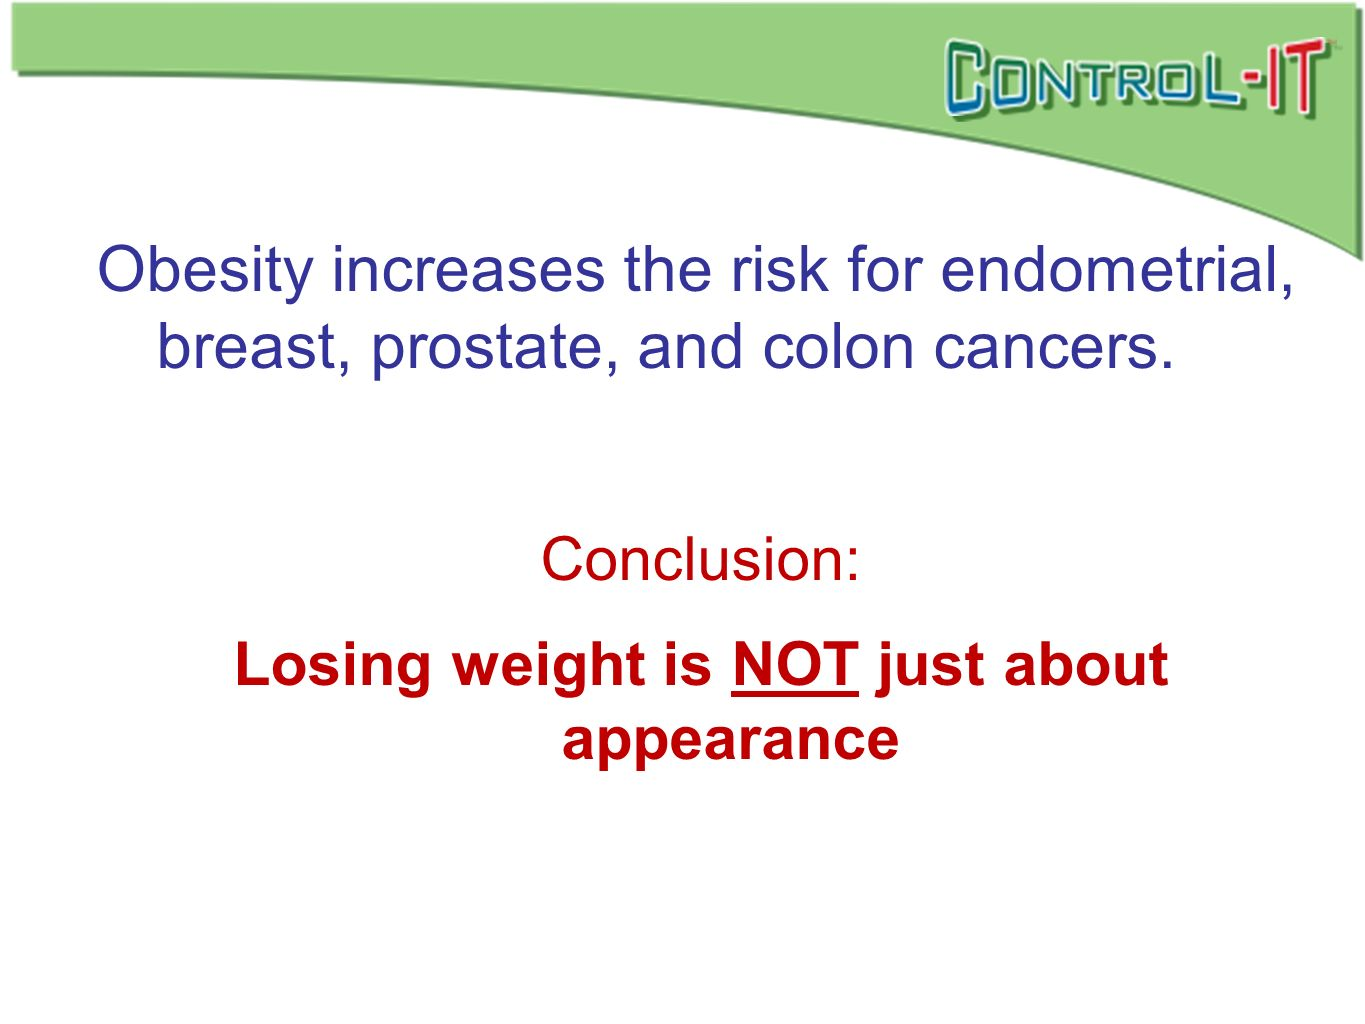 Obesity increases the risk for endometrial, breast, prostate, and colon cancers. Conclusion: Losing weight is NOT just about appearance